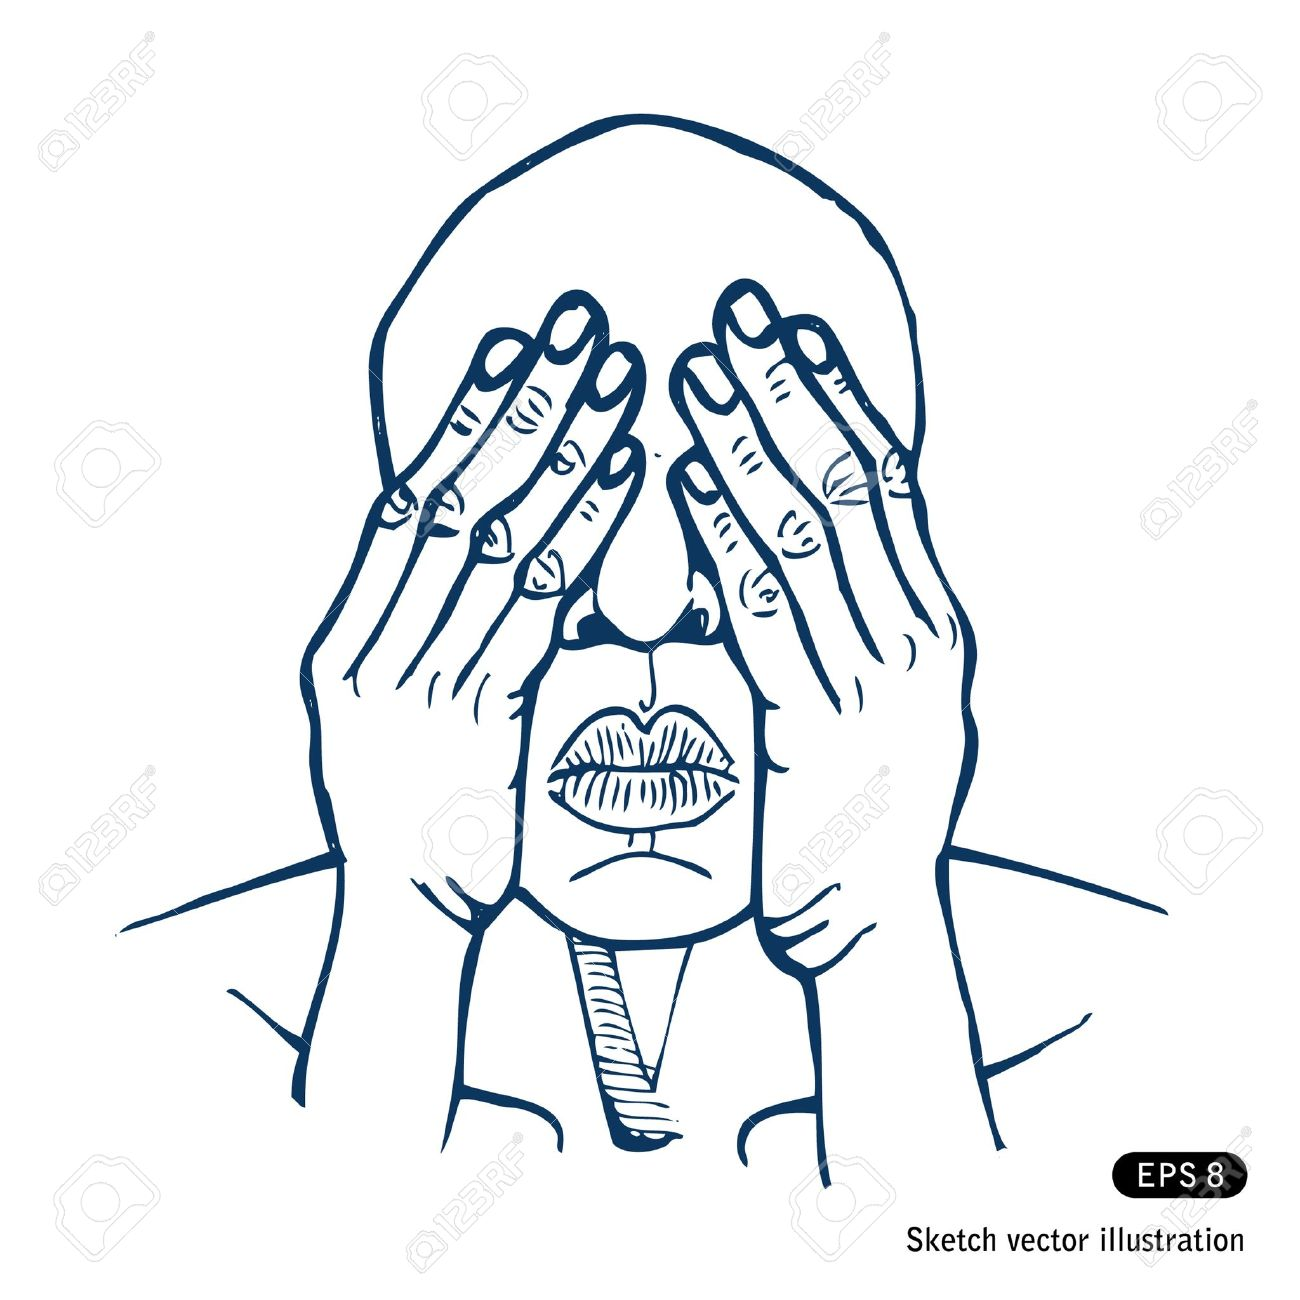 Clipart person covering eyes.